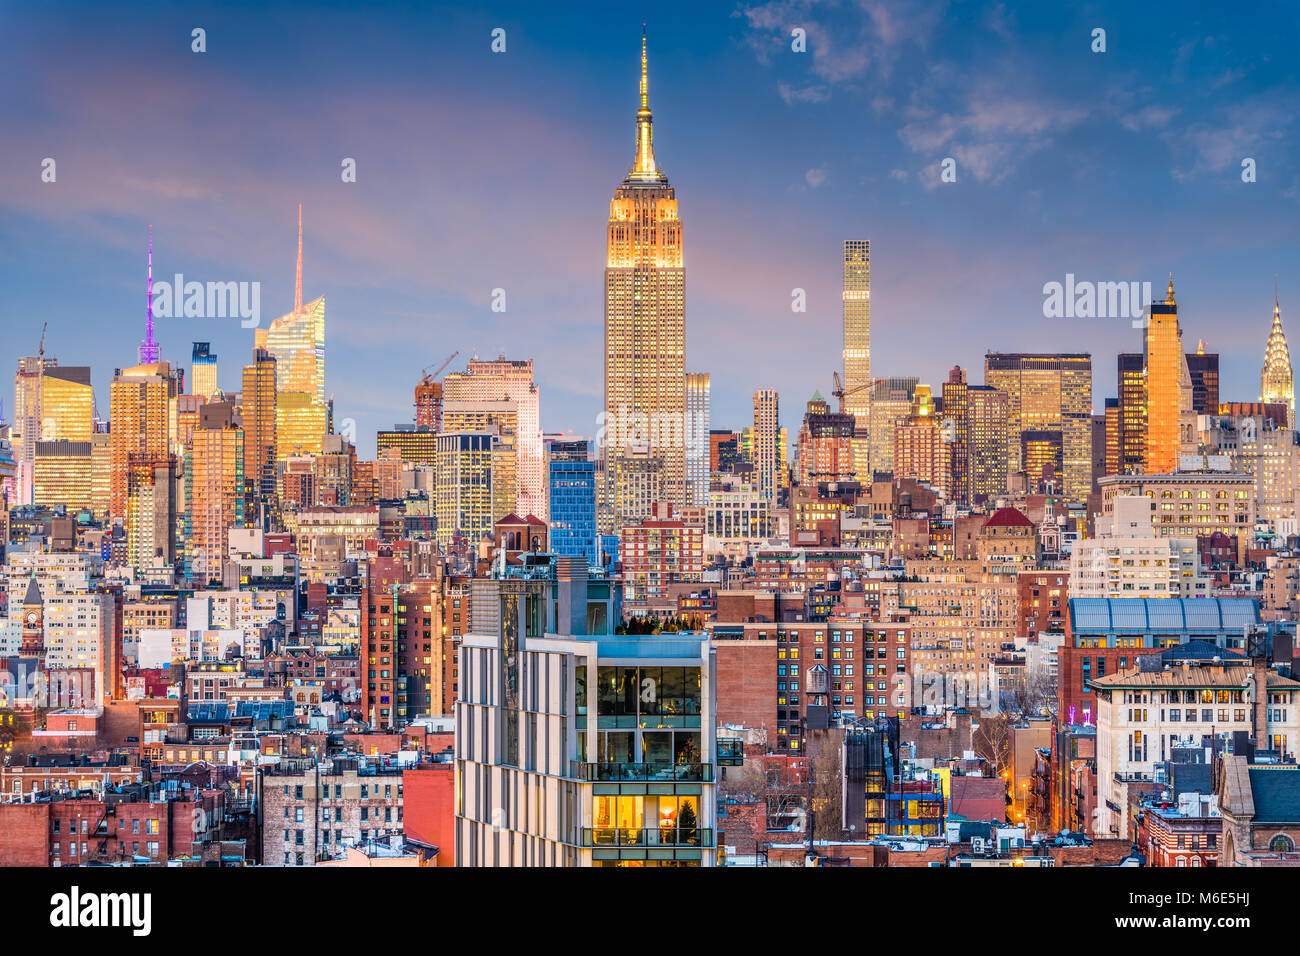 New York City, USA midtown Manhattan skyline at dusk. - Stock Image